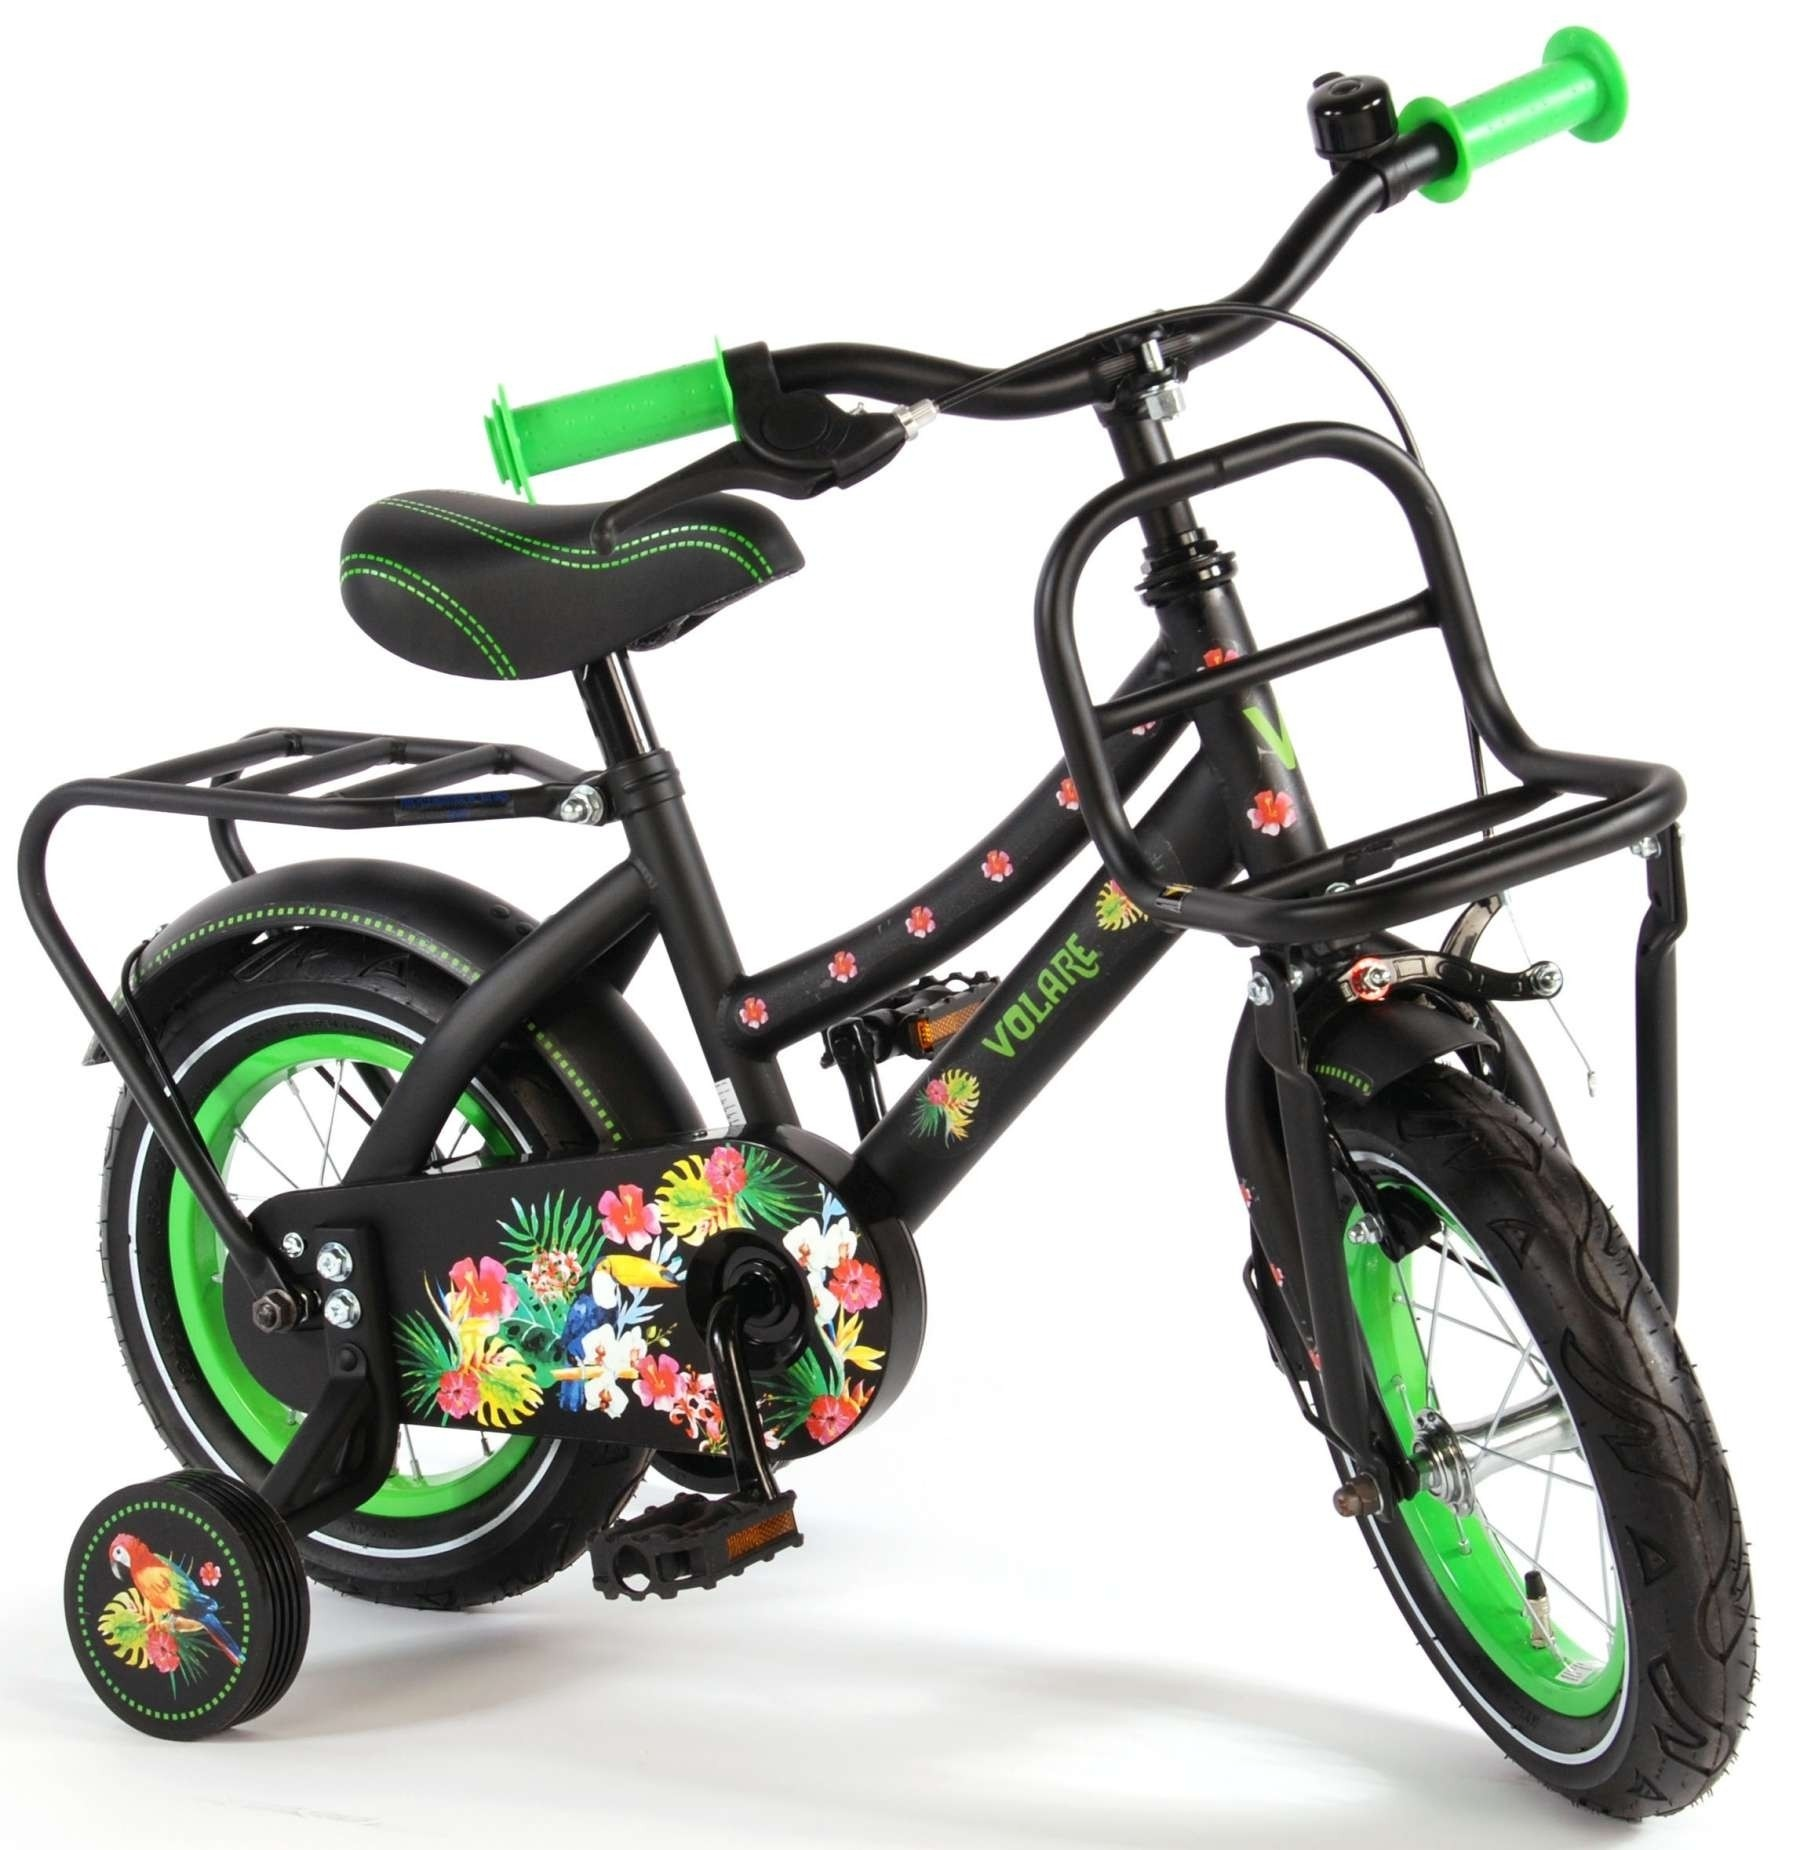 Volare Tropical Girls 12 inch meisjesfiets 61219